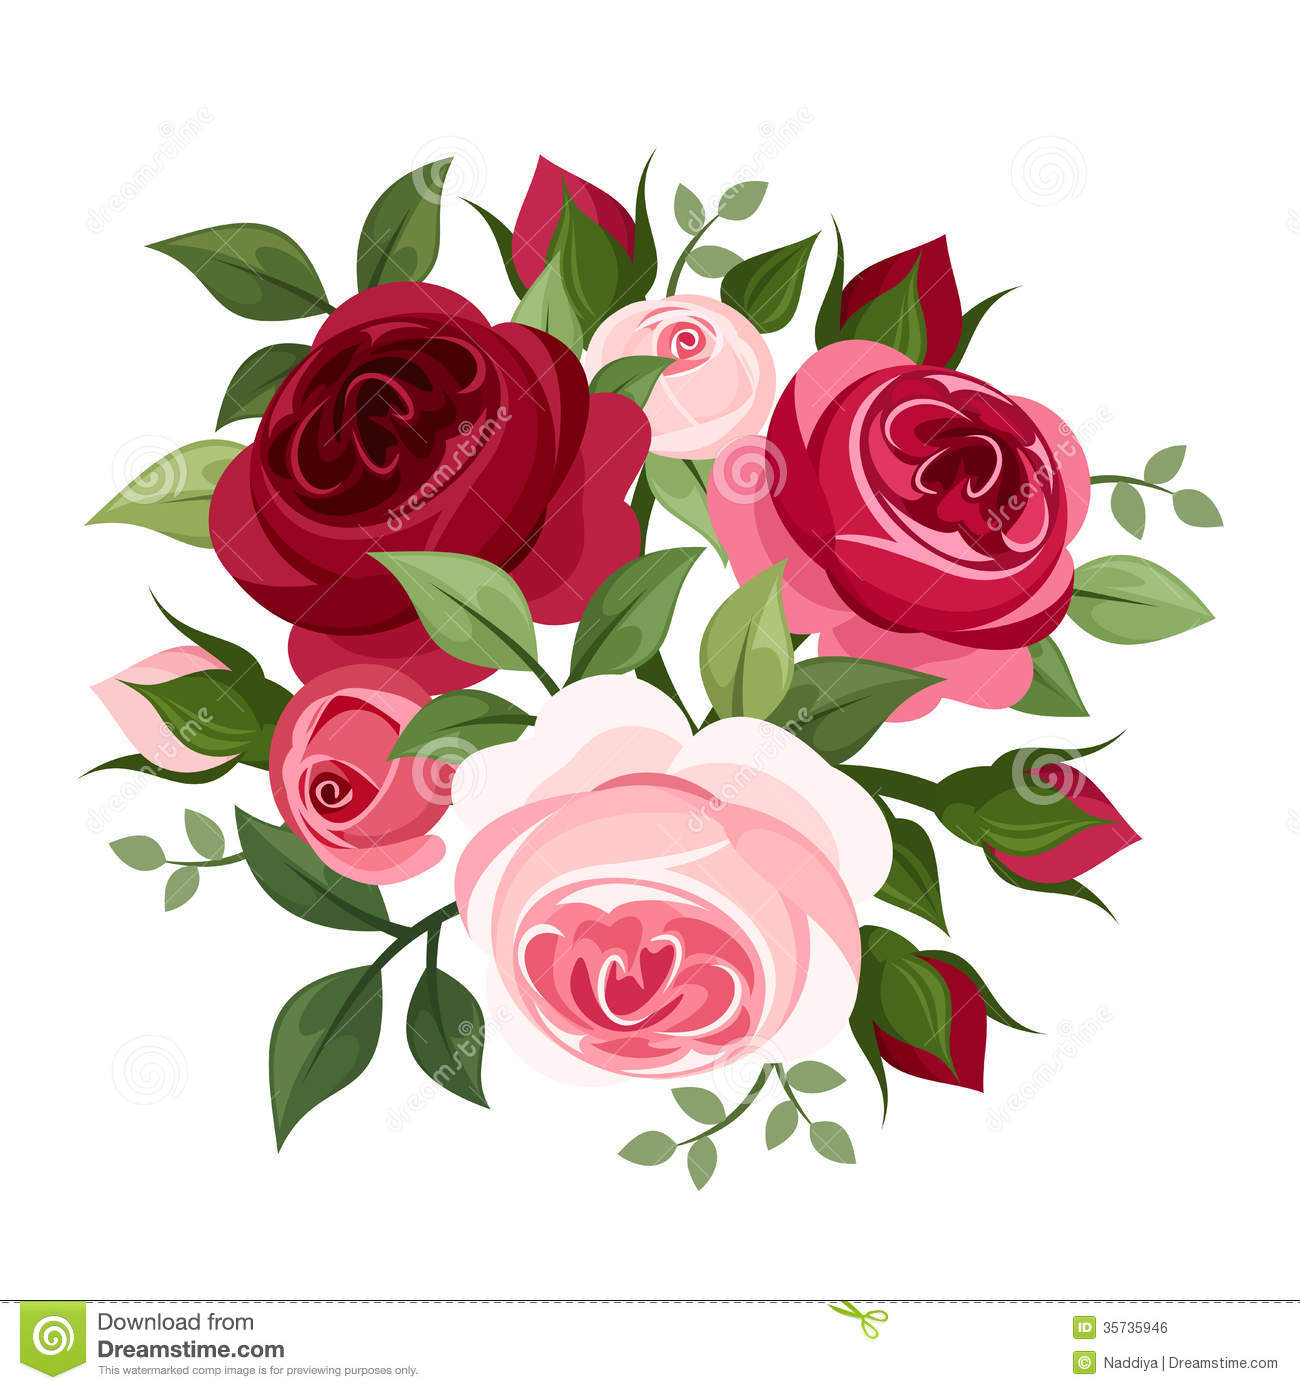 And pink english roses and rose buds isolated on a white background